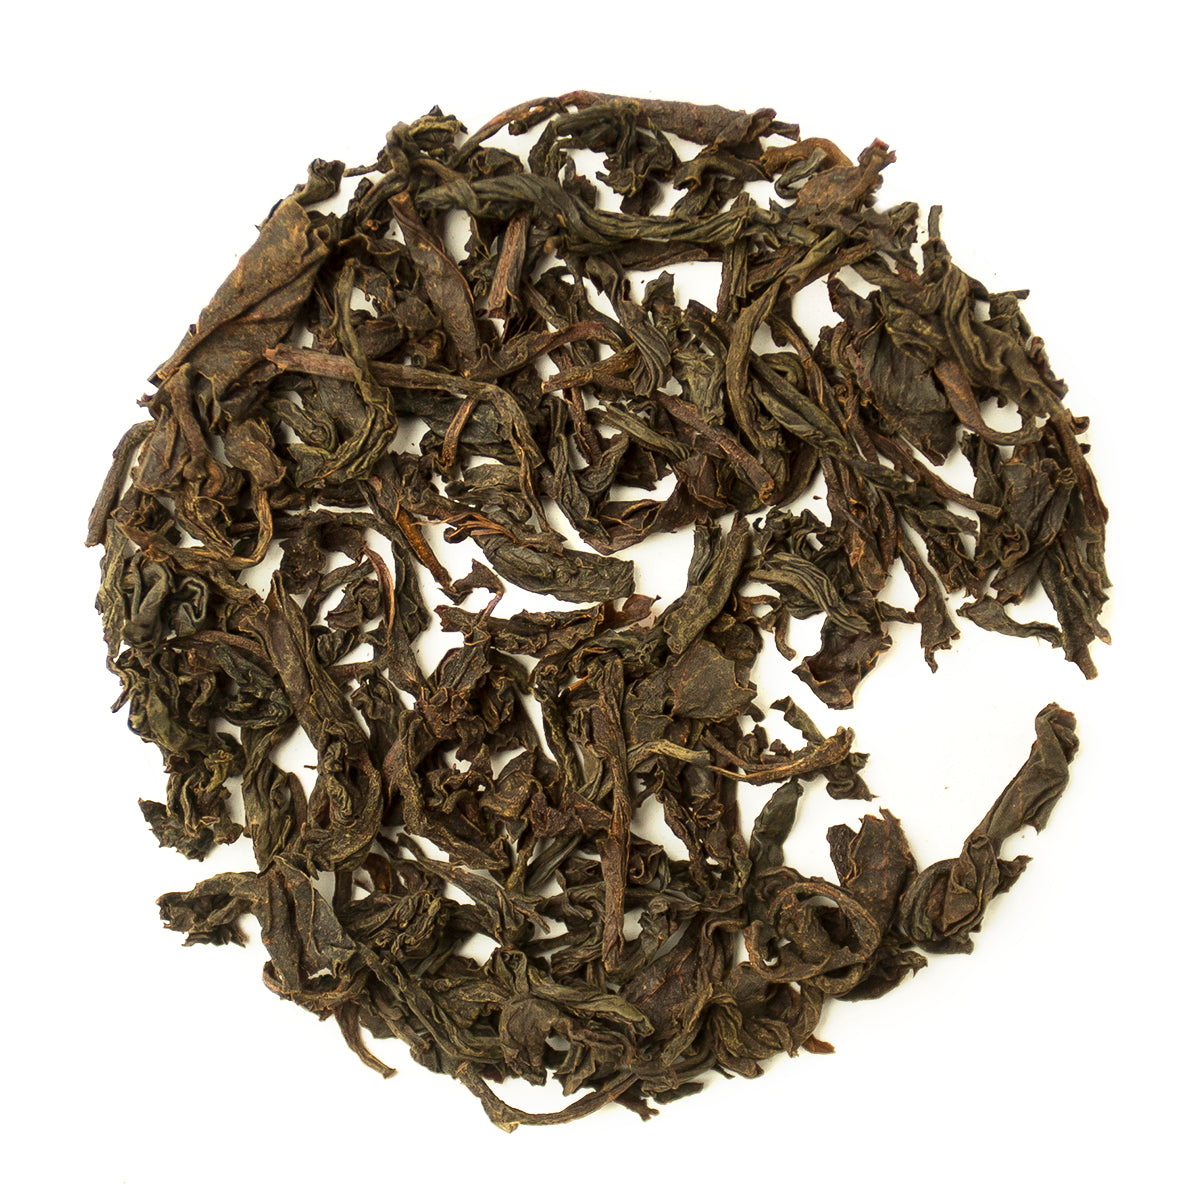 Eary Grey Tea Organic